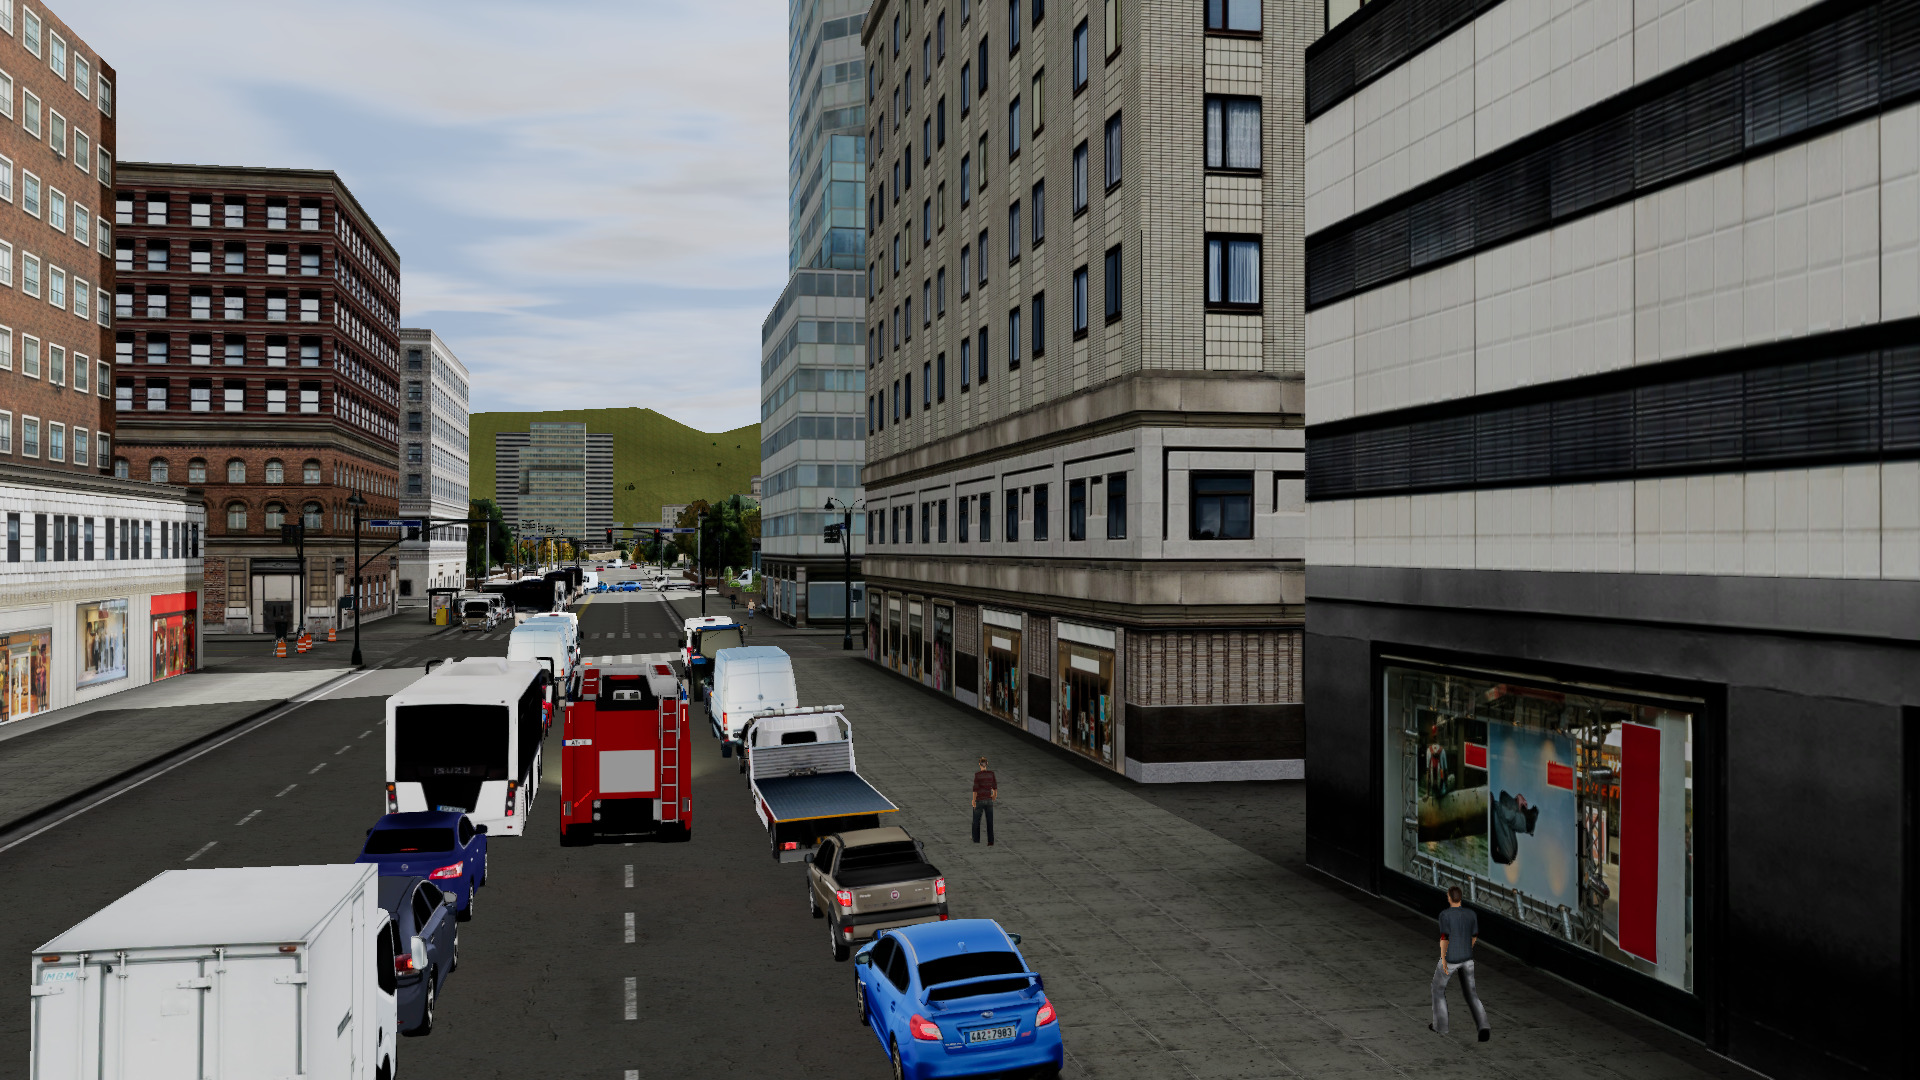 Emergency Response Driving Trainee splitting traffic in the city on its way to a call in our ERDS Simulator.